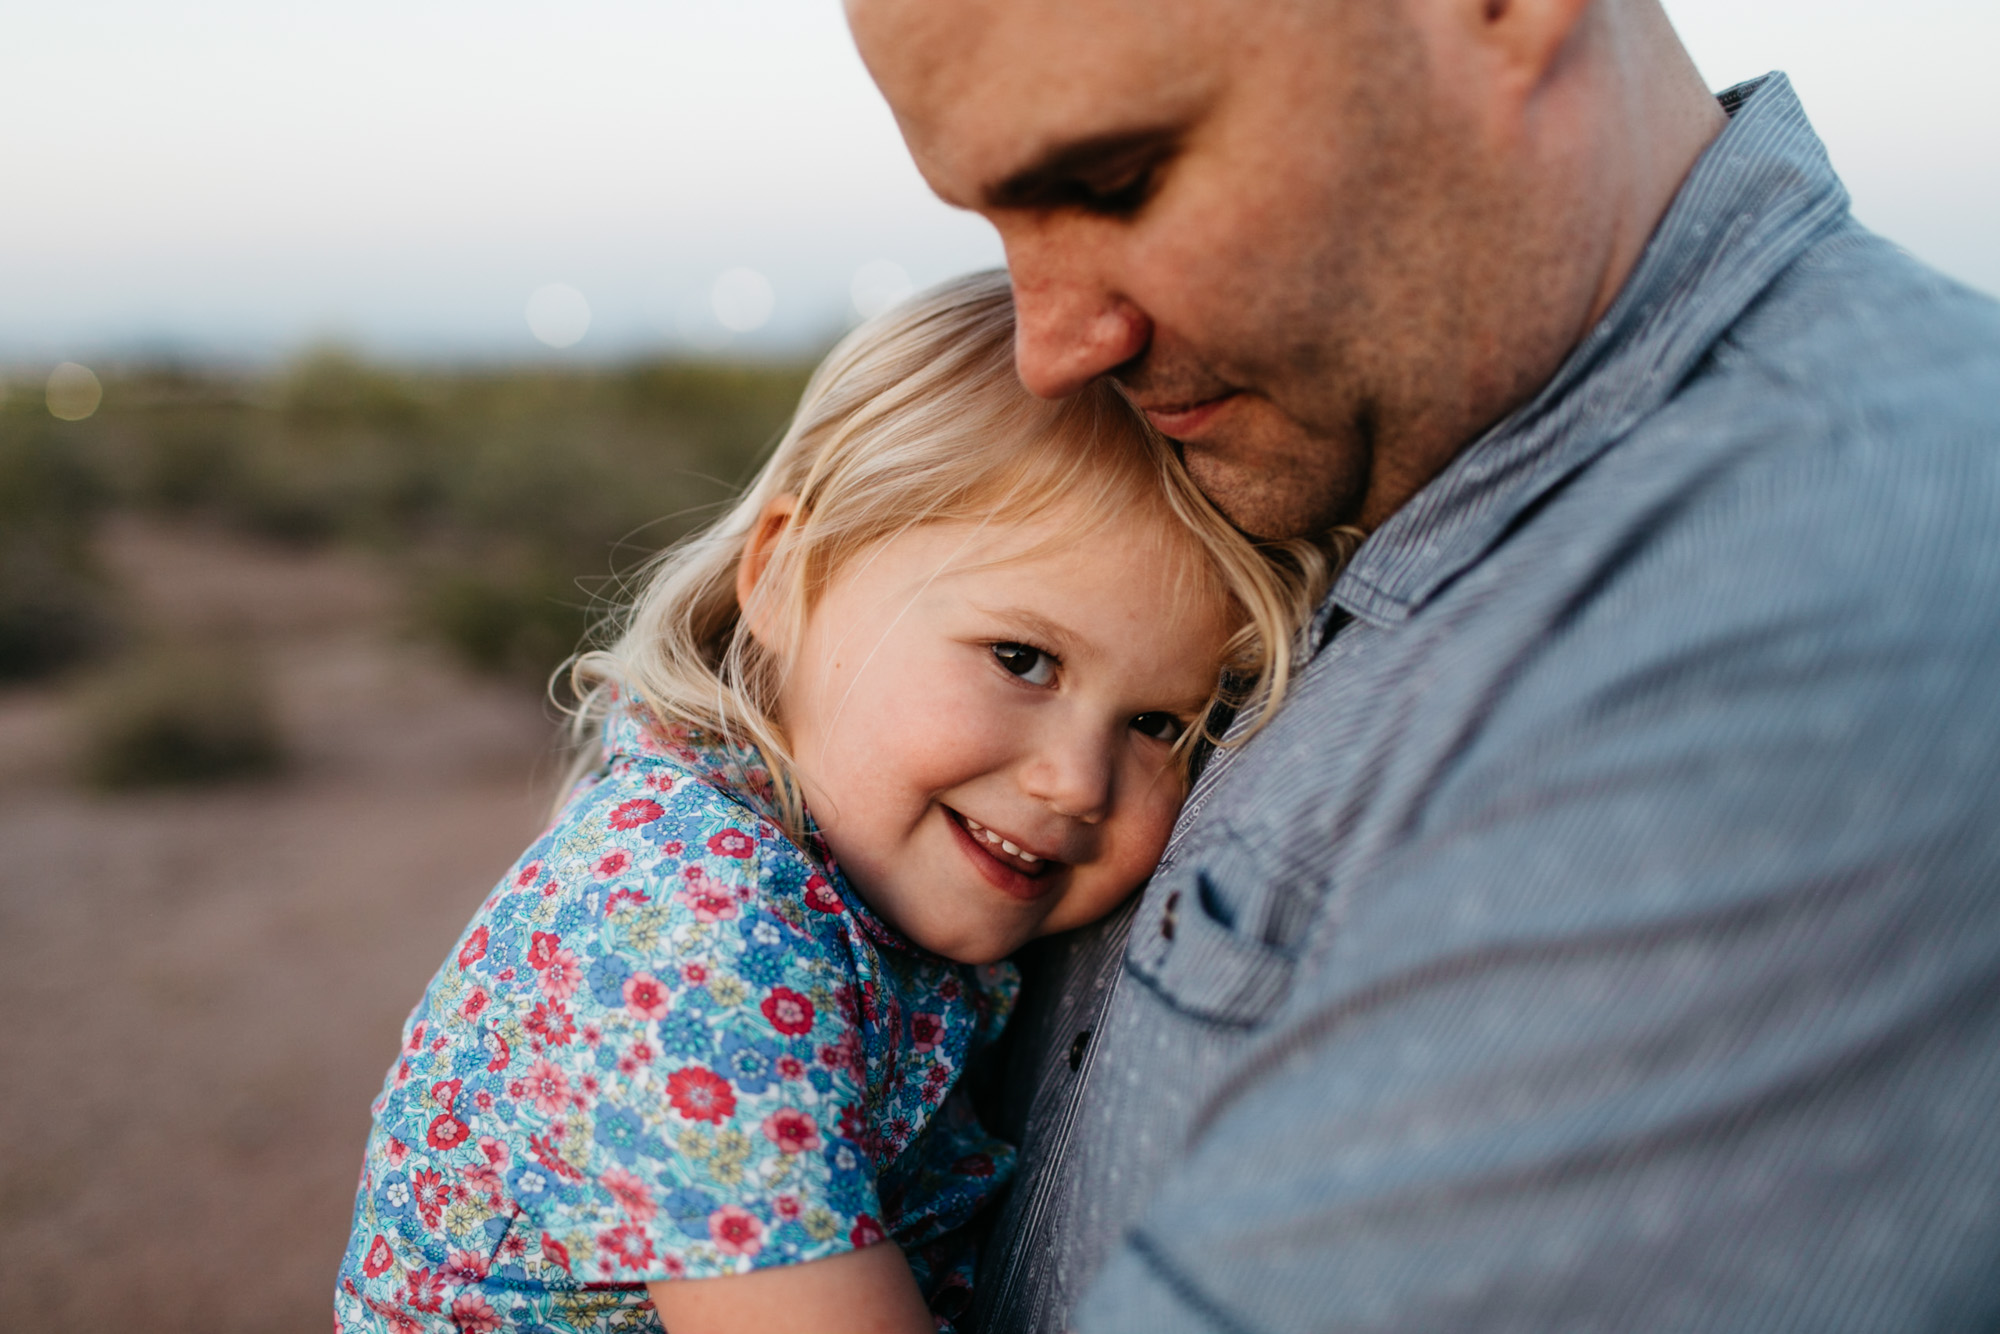 scottsdale-family-lifestyle-photographer-39.jpg